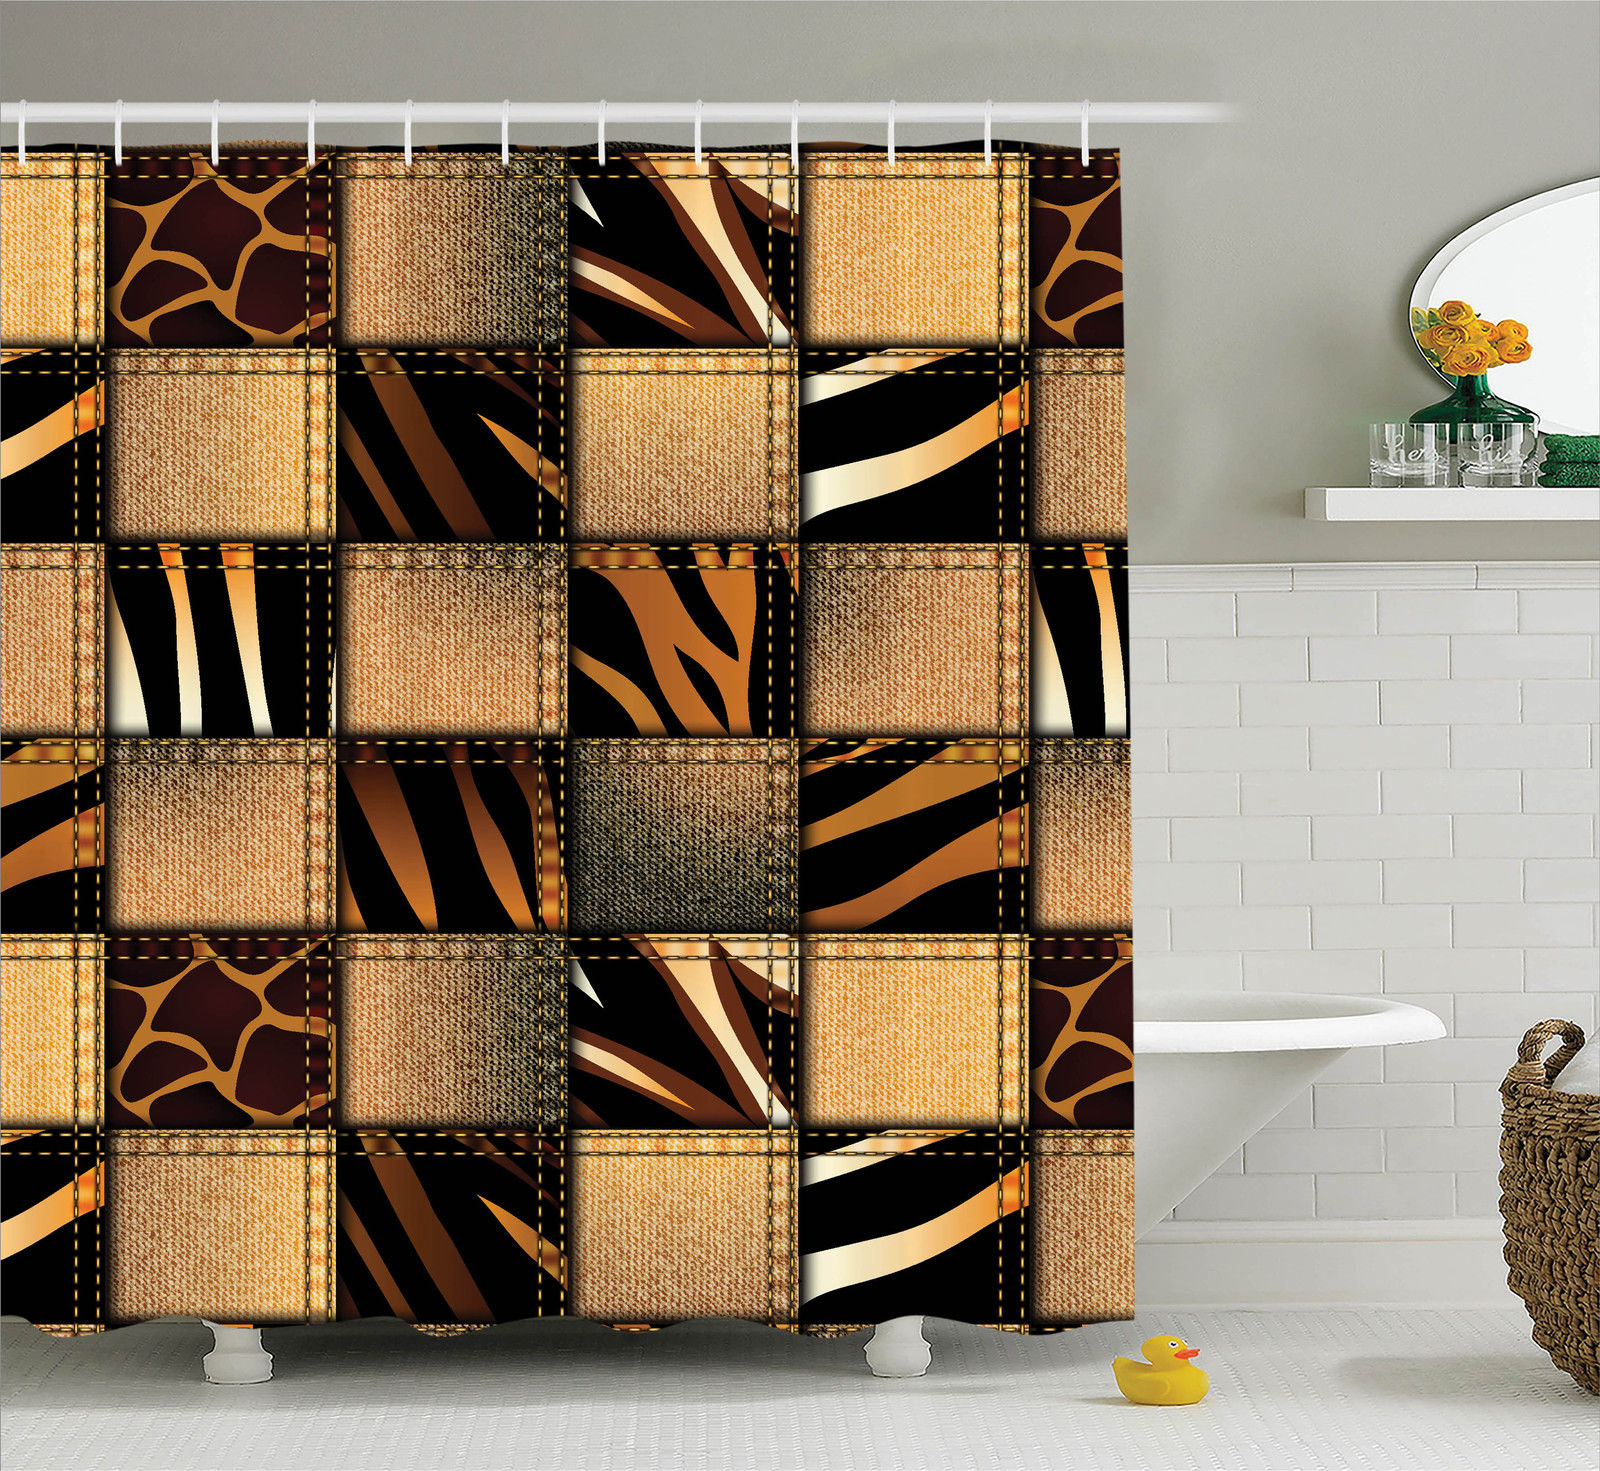 Safari Decor Shower Curtain Set, Jeans Denim Patchwork In Safari Style Animal  Print Stylish Fashionable